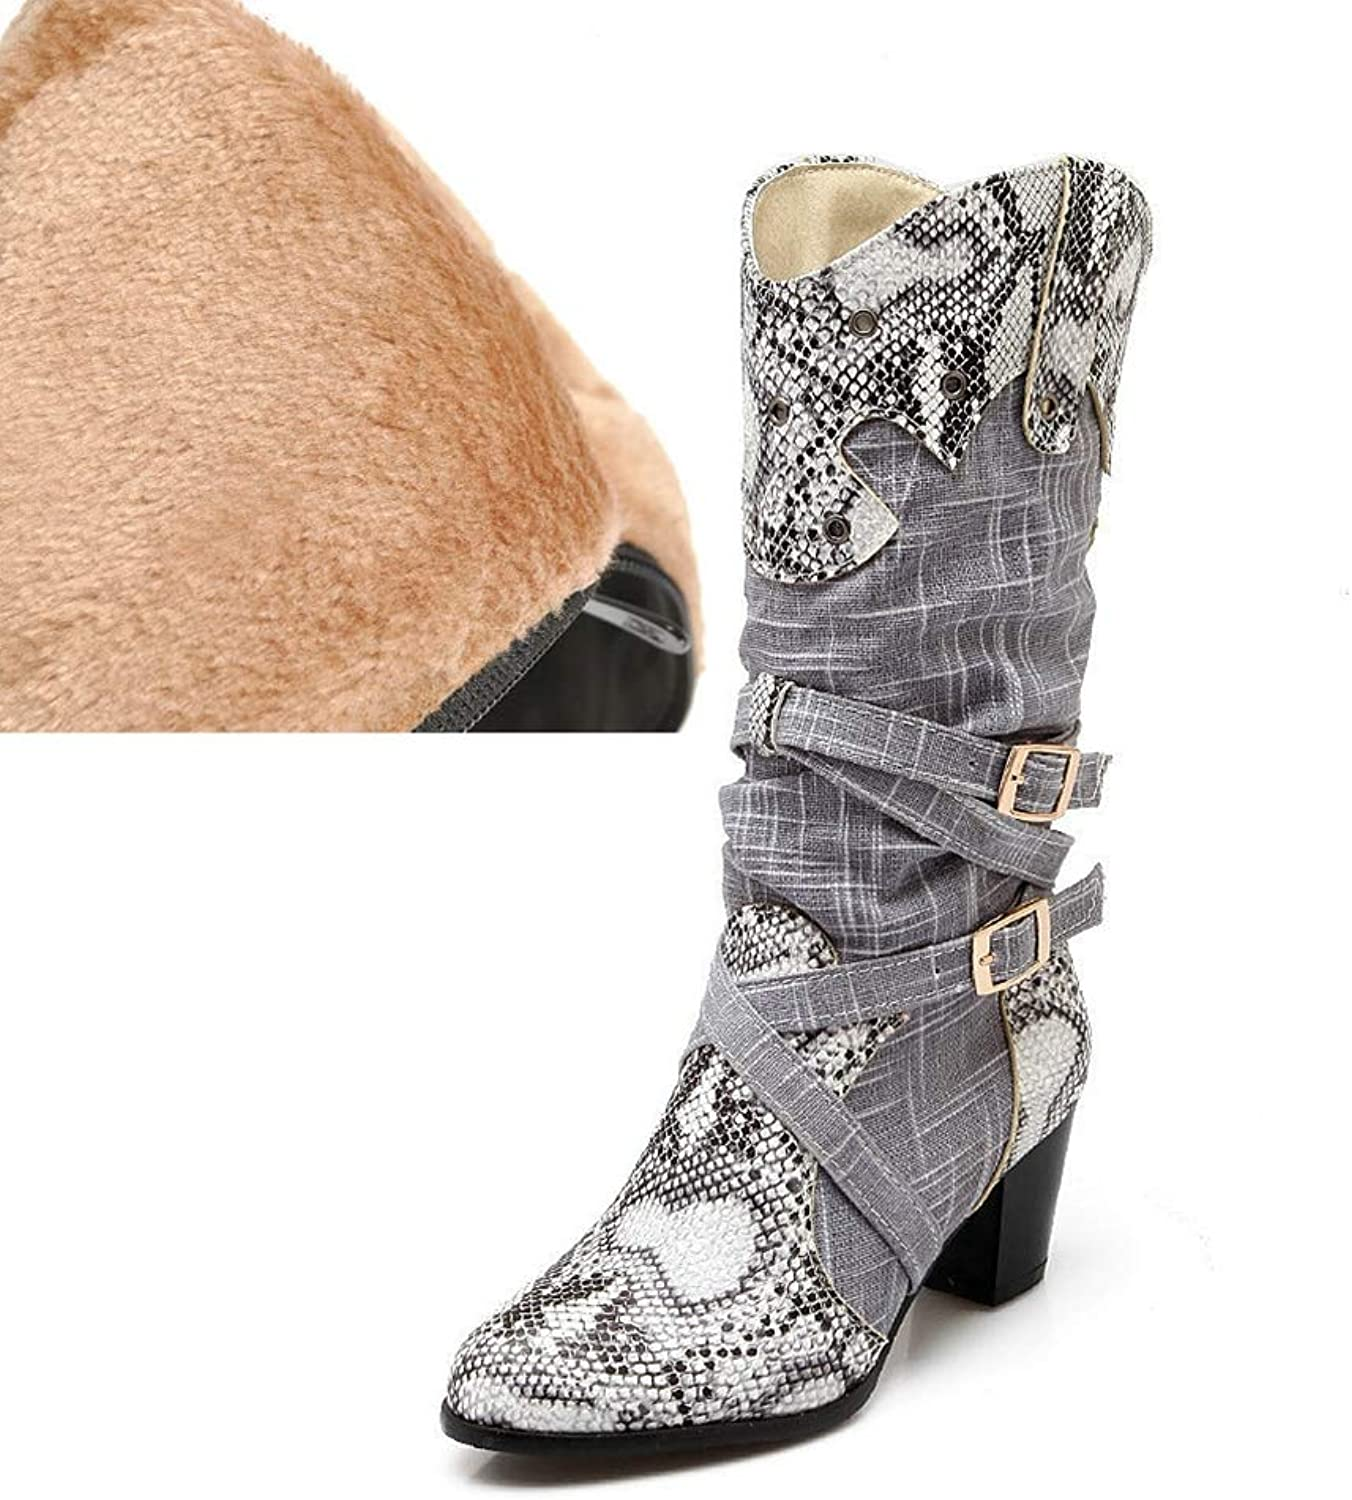 CYBLING Womens Strappy Western Boots Fashion Snakeskin Printed Slouchy Cowboy Mid Calf Boots